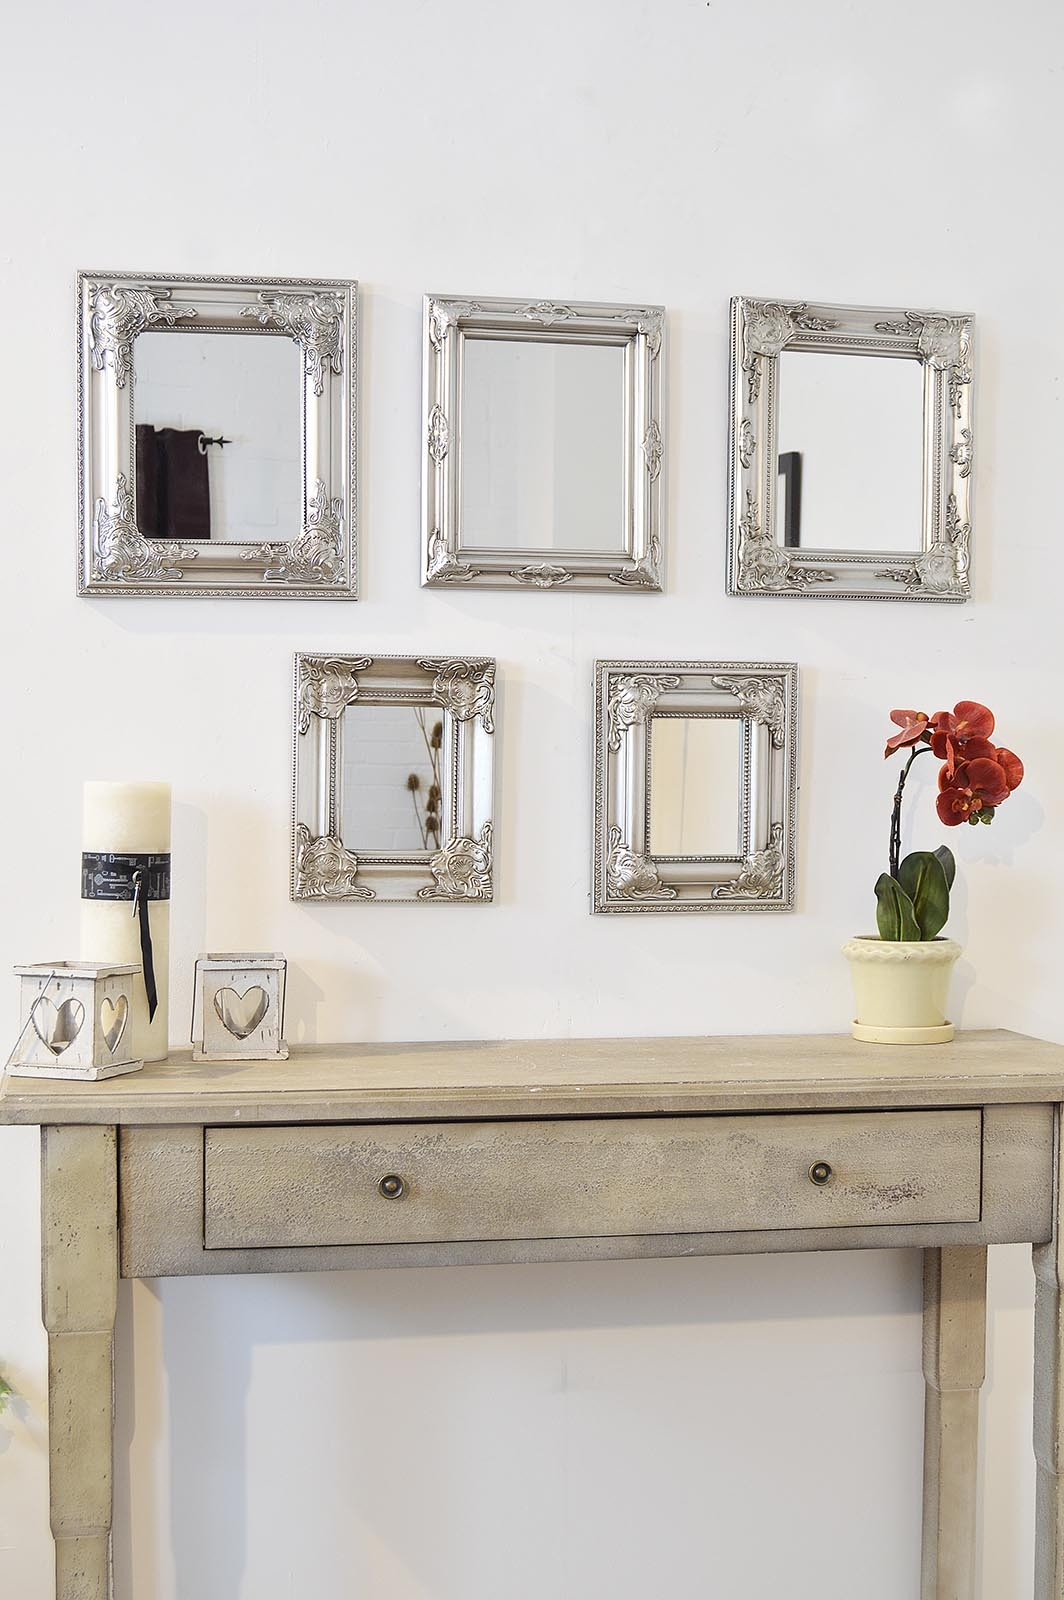 Scatter Set Of 5 Silver Wall Mirrors Stunning Antique Style Intended For Antique Style Mirrors Wall (Image 12 of 15)